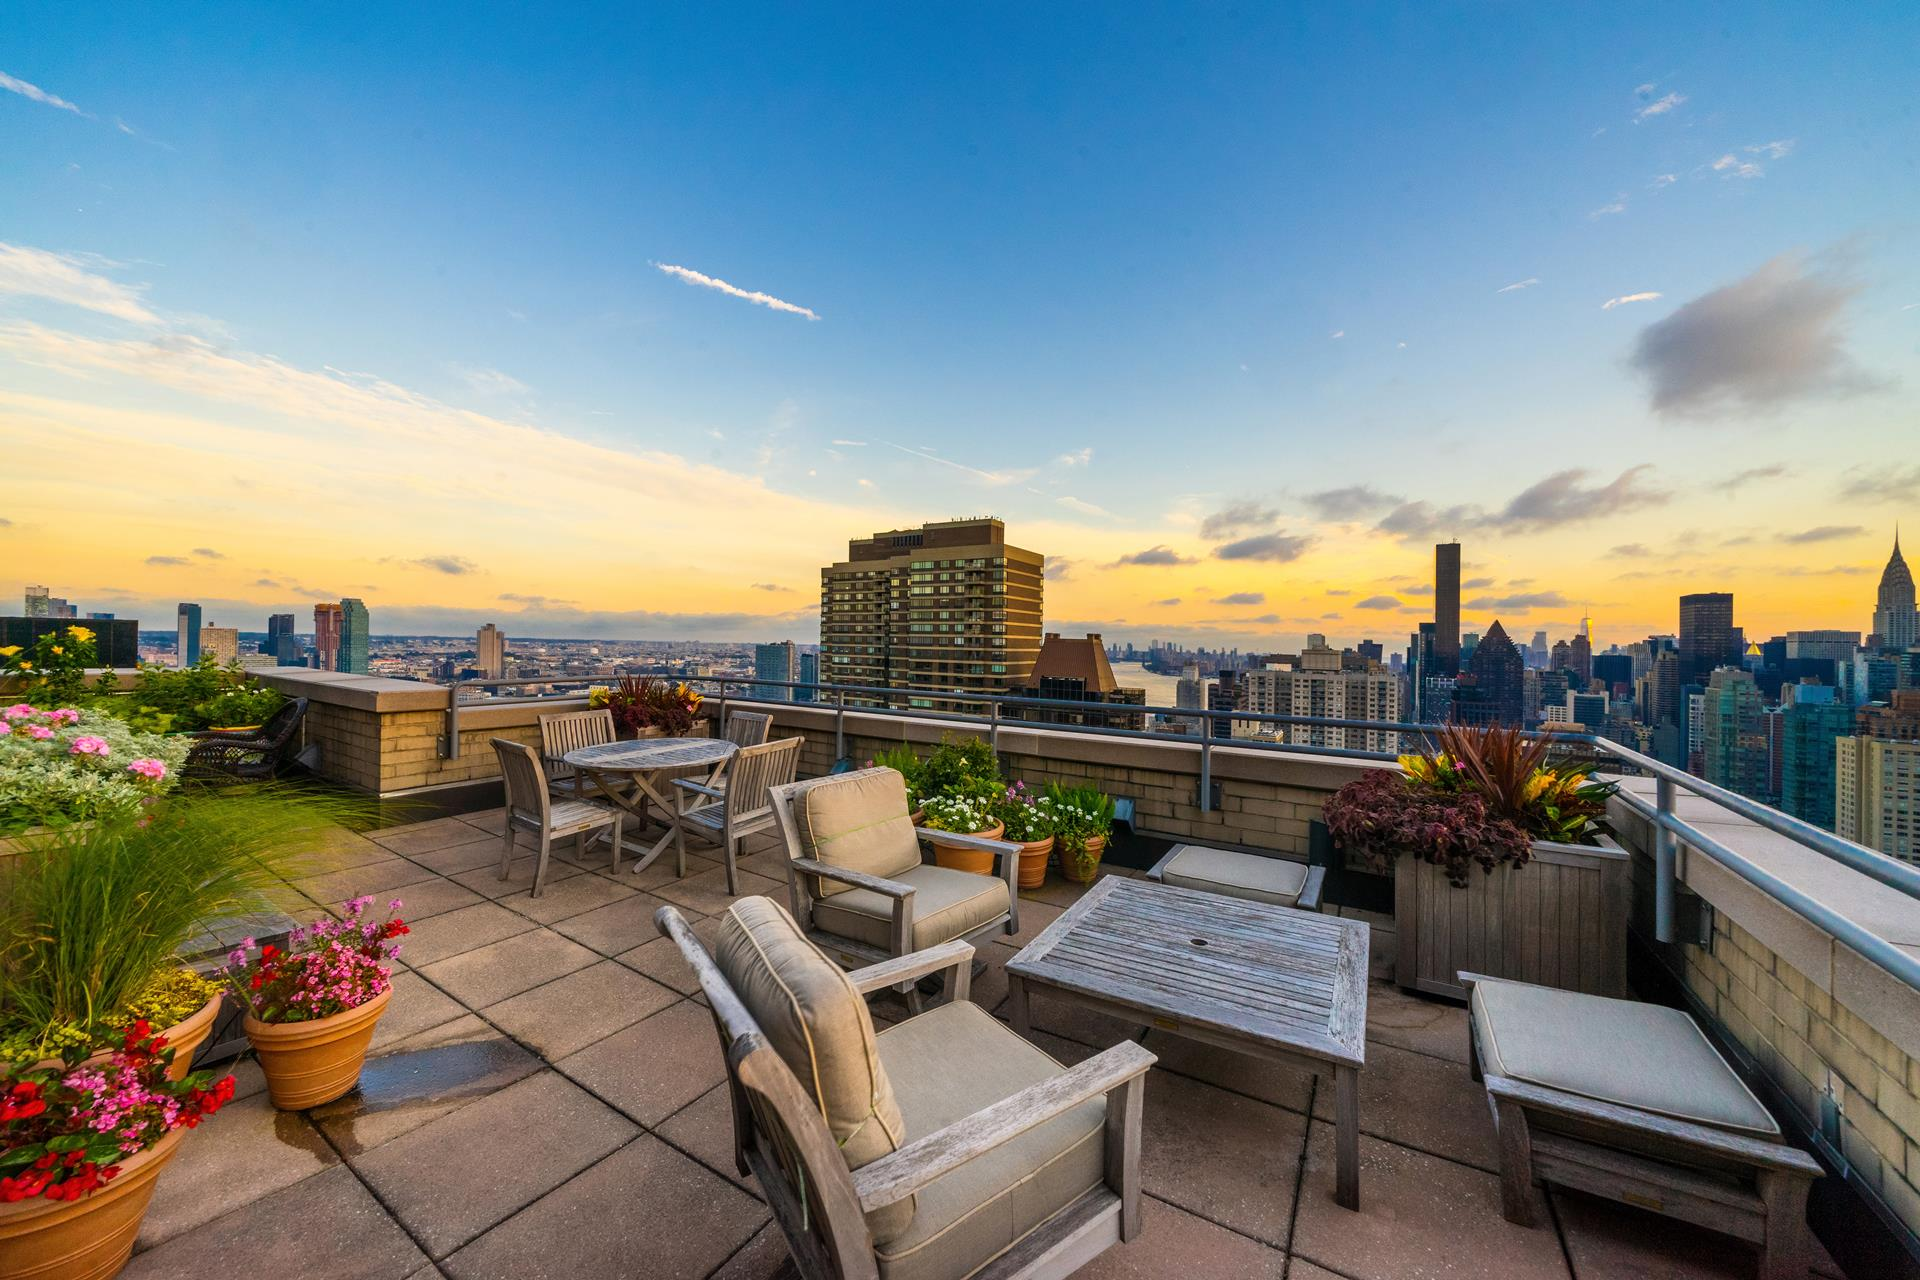 OWNER RELOCATING OUT OF STATE & WANTS 2020 SALE!The Penthouse at Bridge Tower Place is a combined 4960 square feet spanning the entire 39th floor of 401 E. 60th Street.With 2560 interior square feet and 2400 exterior square feet, this full-floor 3 bedroom - 2 bathroom - 1 powder room apartment features 360 degree views, walls of windows on every side, a full wrap-around terrace, a seamless living flow, every modern convenience (including wood-burning fireplace, touch controlled lighting + shades, & fully-integrated home audio solutions), and is accessible only via private landing.Views encompass all 5 boroughs (plus New Jersey), 7 iconic bridges, Central Park, The Palisades, and almost every meaningful tower in New York  --  One World Trade Center, The Chrysler Building, The Empire State Building, Hudson Yards, 432 Park Avenue, 520 Park Avenue, 220 Central Park South, the entirety of Billionaire's Row, and the choicest of Central Park West's tony buildings.Through the private entry, one is captured by the 60 foot long wall of sunset facing floor-to-ceiling windows that incase the dining, living, and media rooms. Each portion of this wing is sensibly laid out and can be separated by a myriad of cleverly concealed pocket doors.The kitchen is state-of-the-art, as expected, with Subzero, Miele, and Viking appliances. The counters are granite and the wet-bar (with wine refrigerator) leads to a clever laundry nook, in which the Electrolux washer and dryer are stored.On the opposite, North facing side of the apartment, one finds the exquisite master bedroom with marble en-suite windowed bath. From this place of respite one can access the wrap-around terrace, which is the crown jewel of this abode.The 360 degree outdoor space is beautiful planted and has at least four distinct sections which make multipurpose / multi-use possible. As with the rest of the home, it has a state of the art speaker system.401 E. 60th Street, PH is currently configured as a one bedroom apartment,